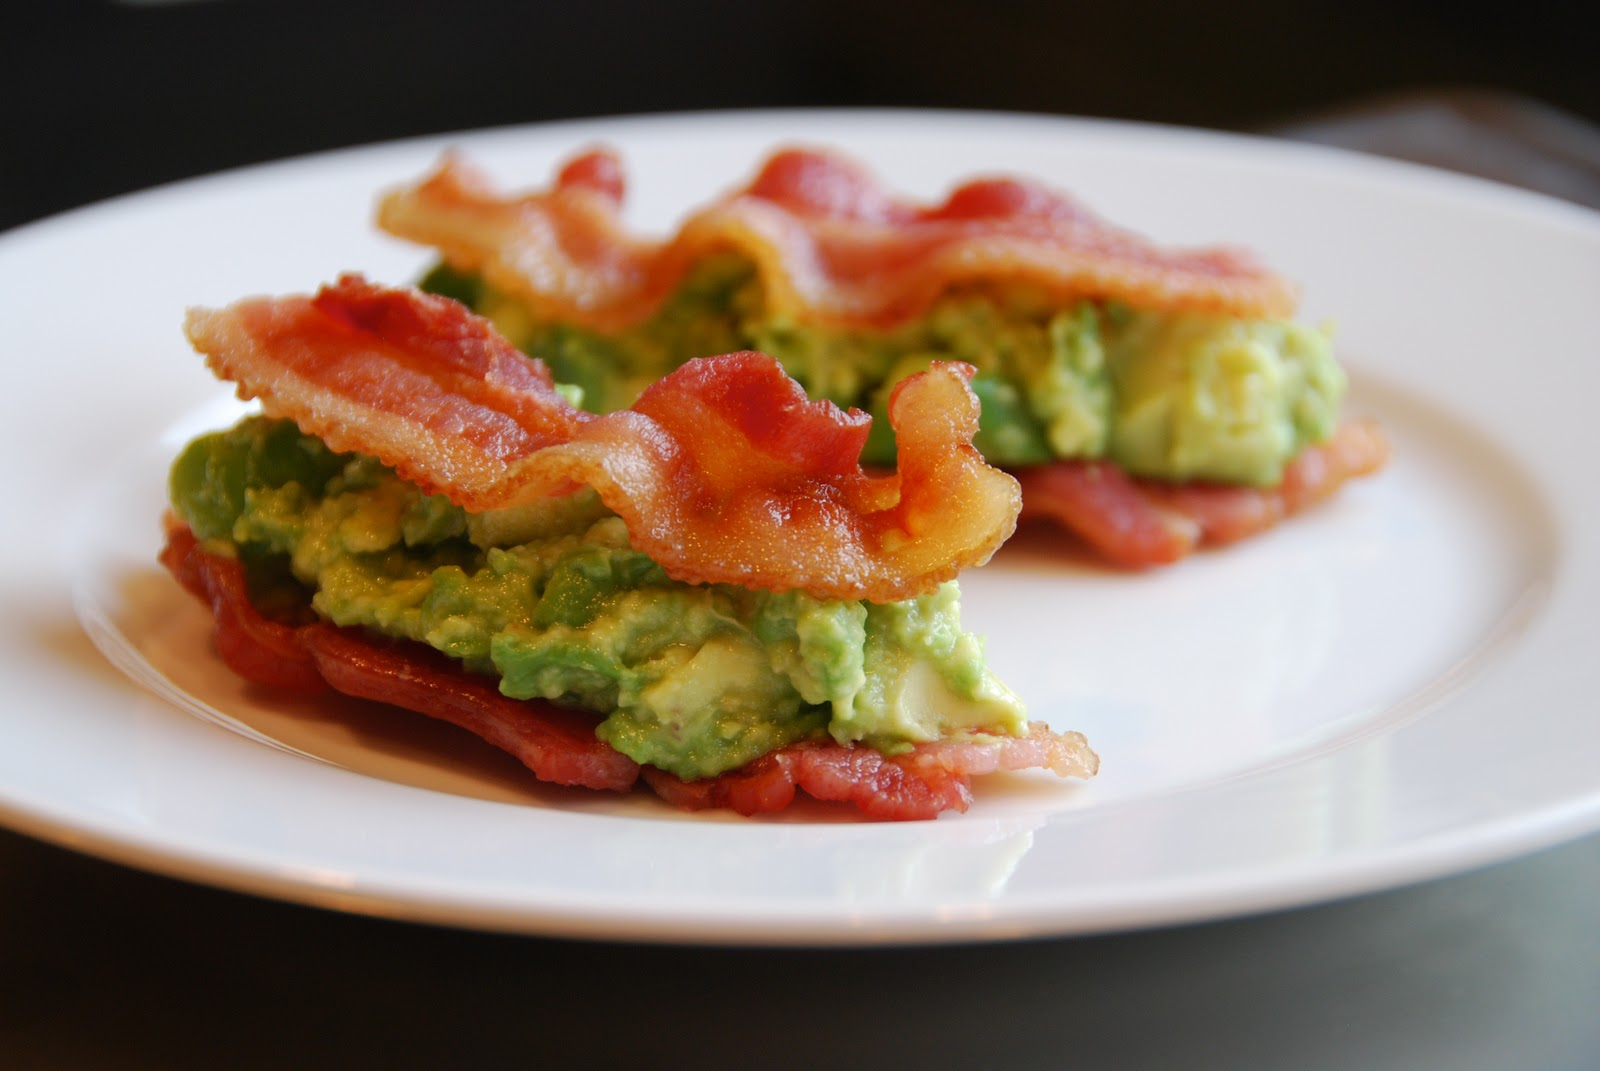 Bacon and Guacamole Sammies @ Nom Nom Paleo